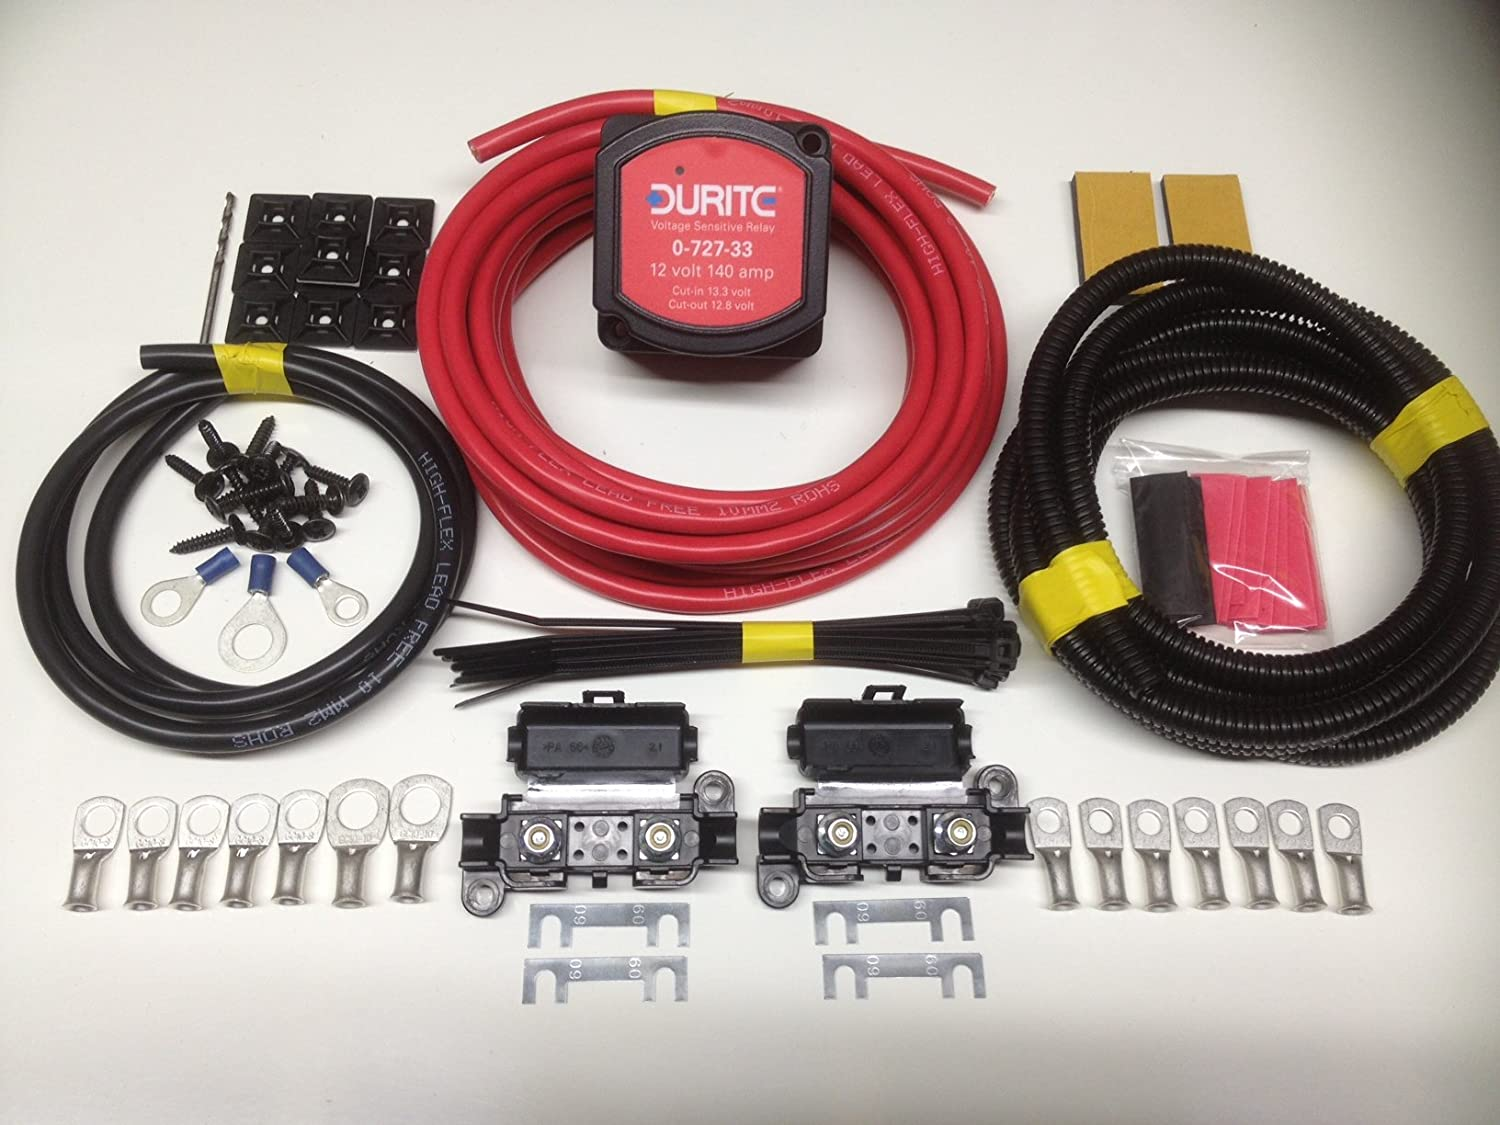 3mtr Split Charge Relay Kit 12v 140amp Durite Intelligent Voltage Sensitive Wiring Sense Sckd113 Car Motorbike